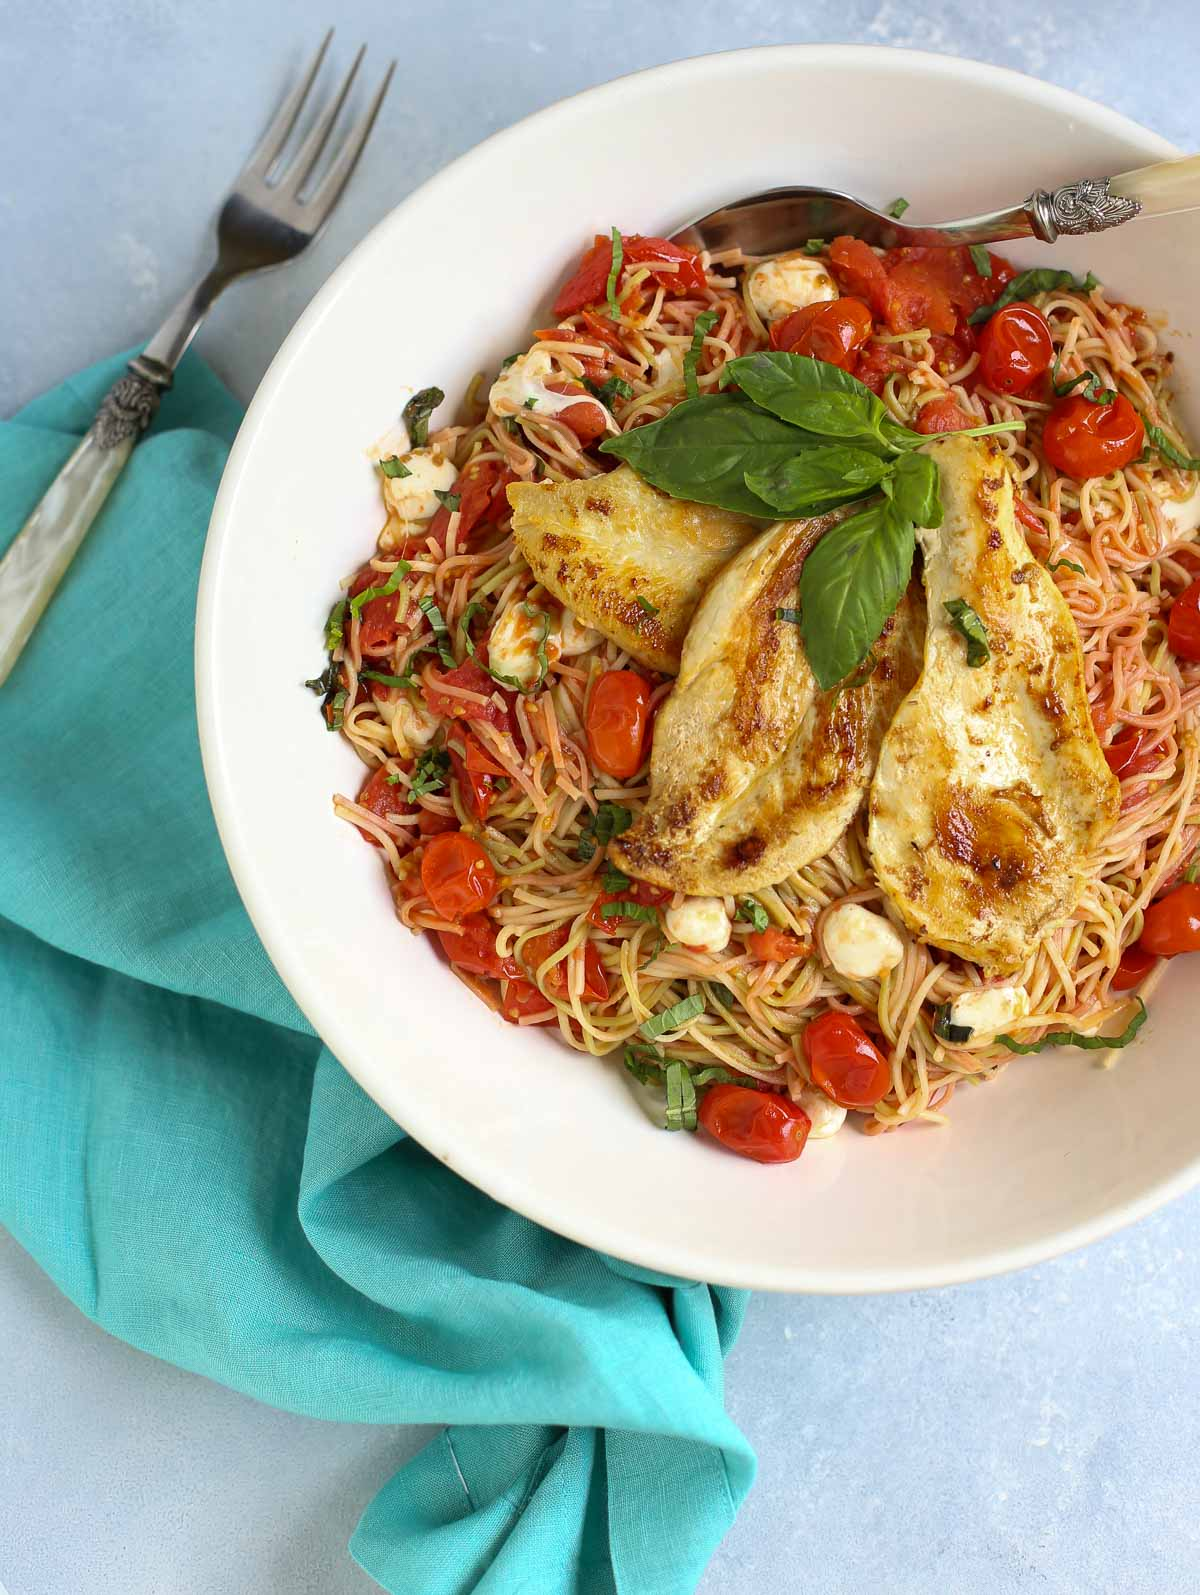 Margherita Pasta with Chicken | Take your favorite pizza and make a wonderful pasta dish! Simple, fresh, and delicious! Add chicken to take it up a notch...yum! | Pastashoppe.com